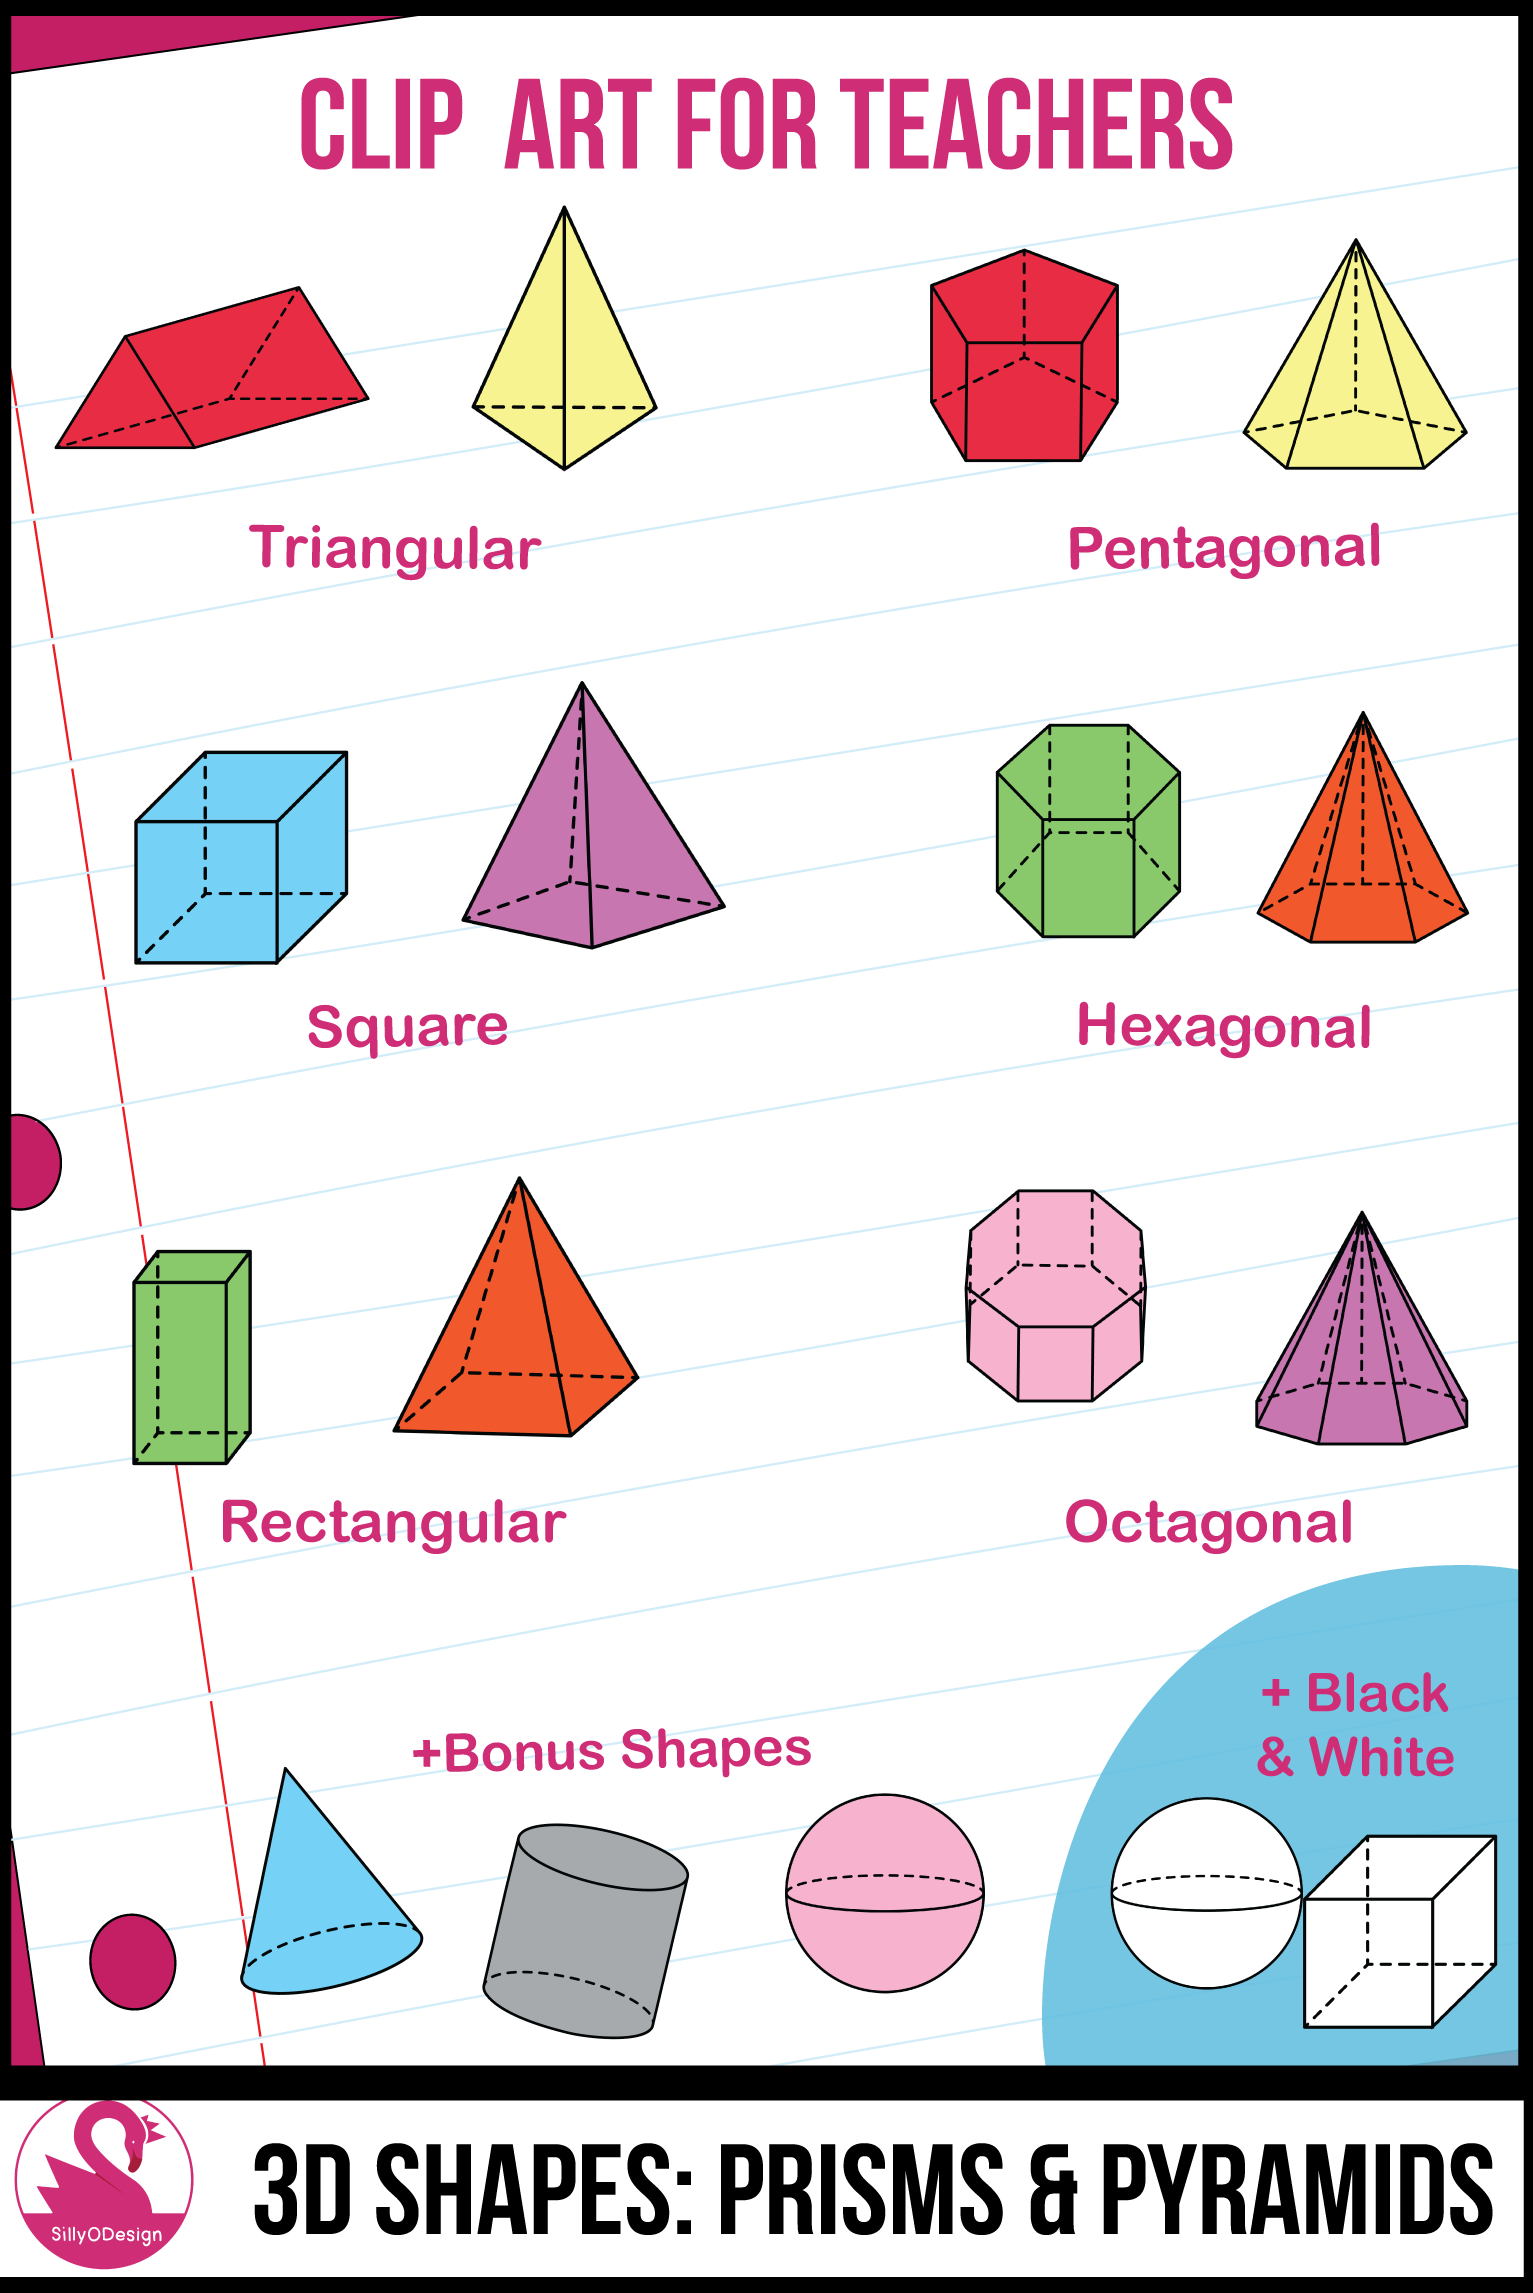 3d shapes clipart: transparent prisms & pyramids, color and black